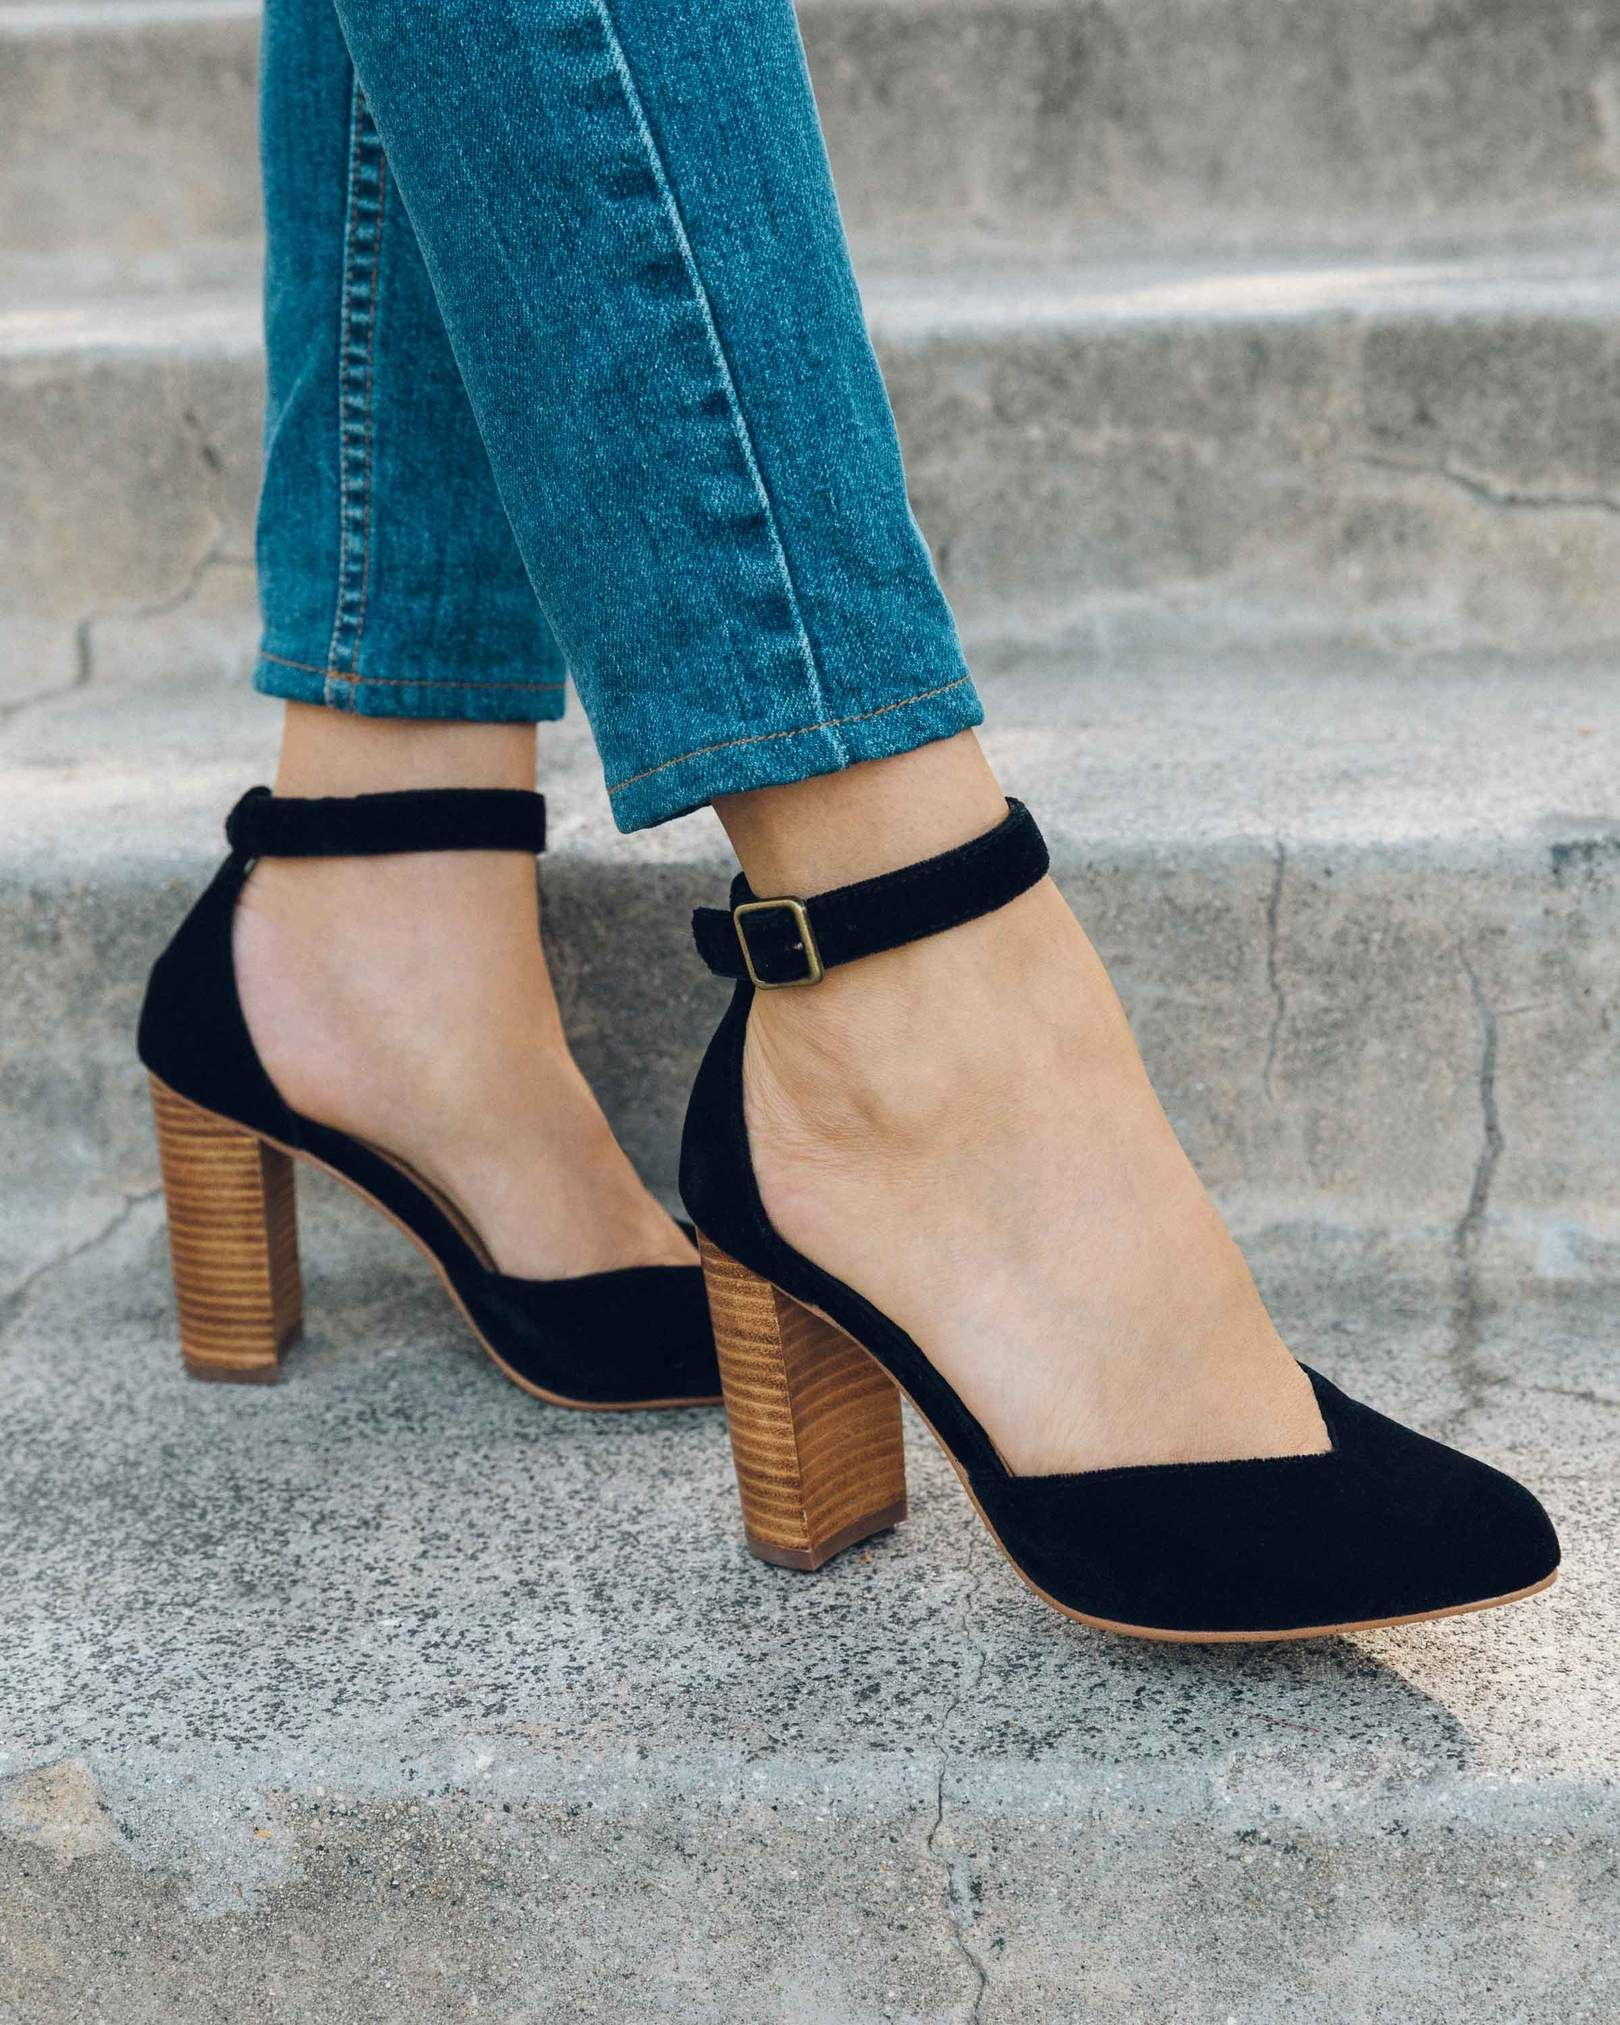 078b6f31a673 Collette Heel - Black   7.5 in 2019